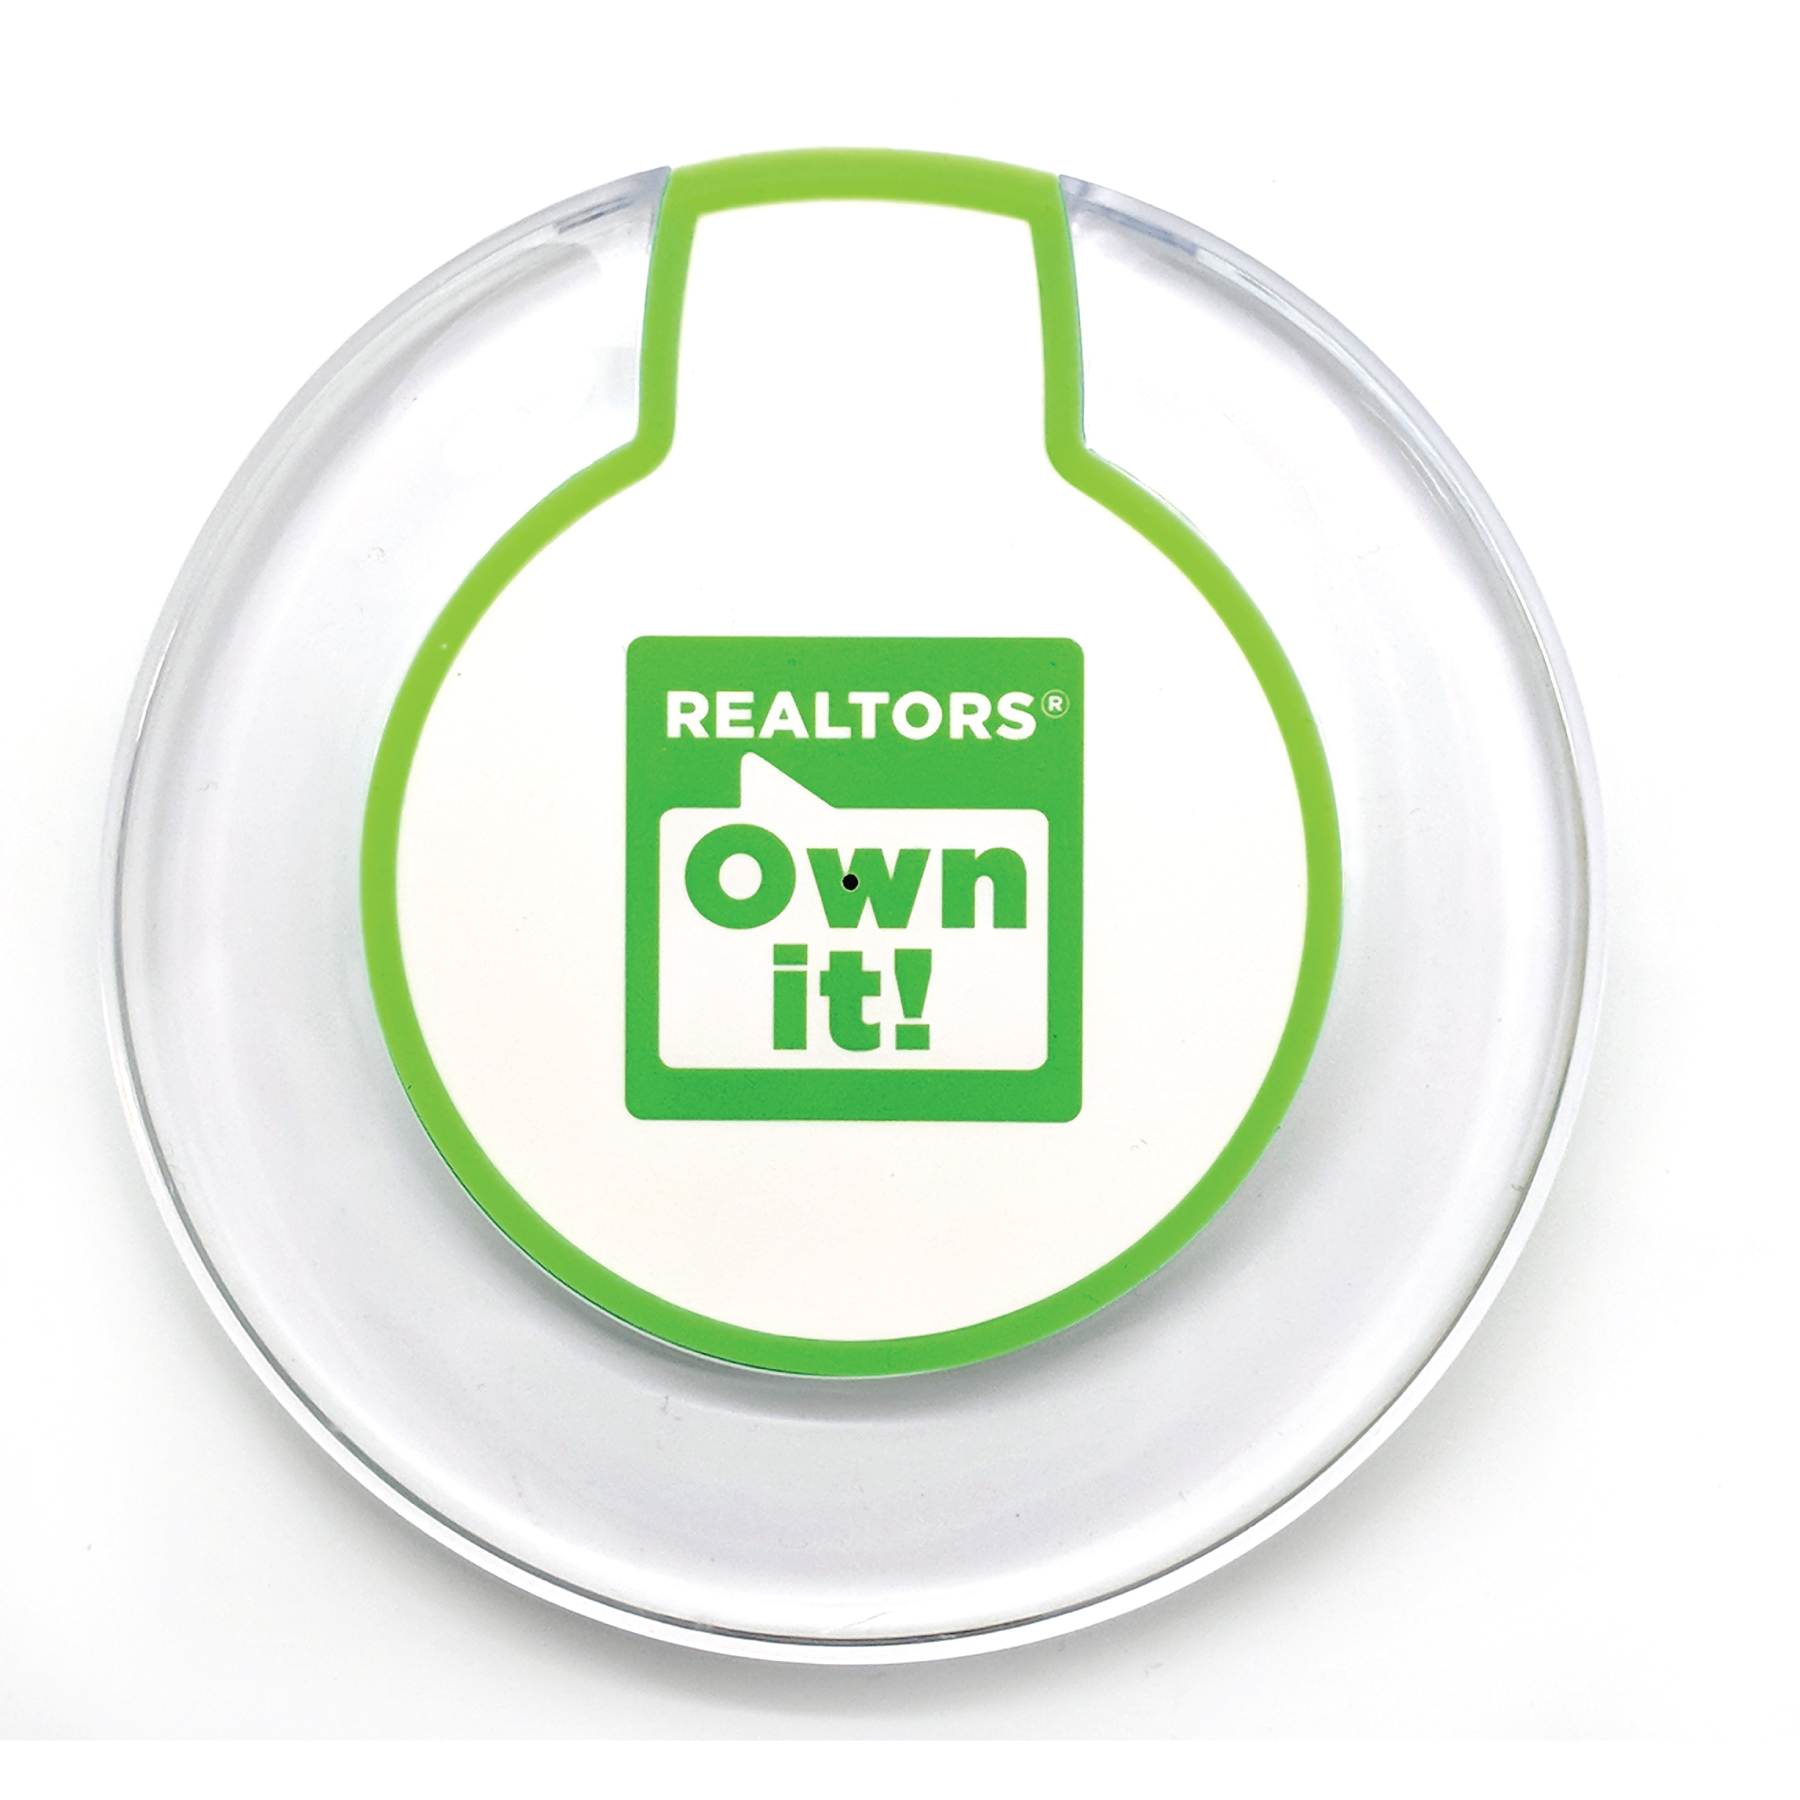 REALTORS® Own It! Qi Charger - ROI1008